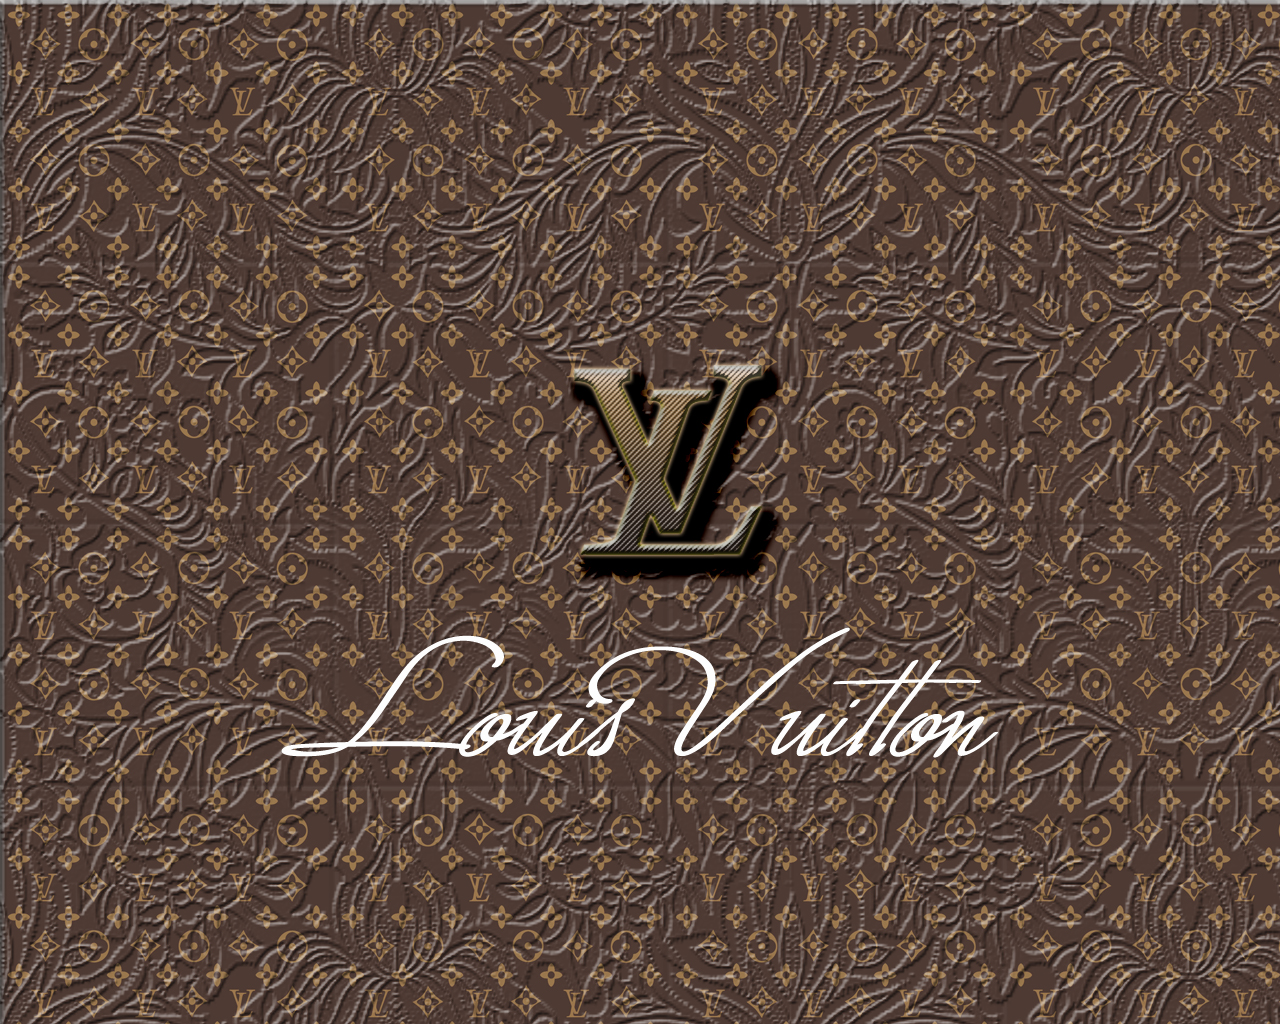 Louis Vuitton IPhone Wallpapers (60 Wallpapers)